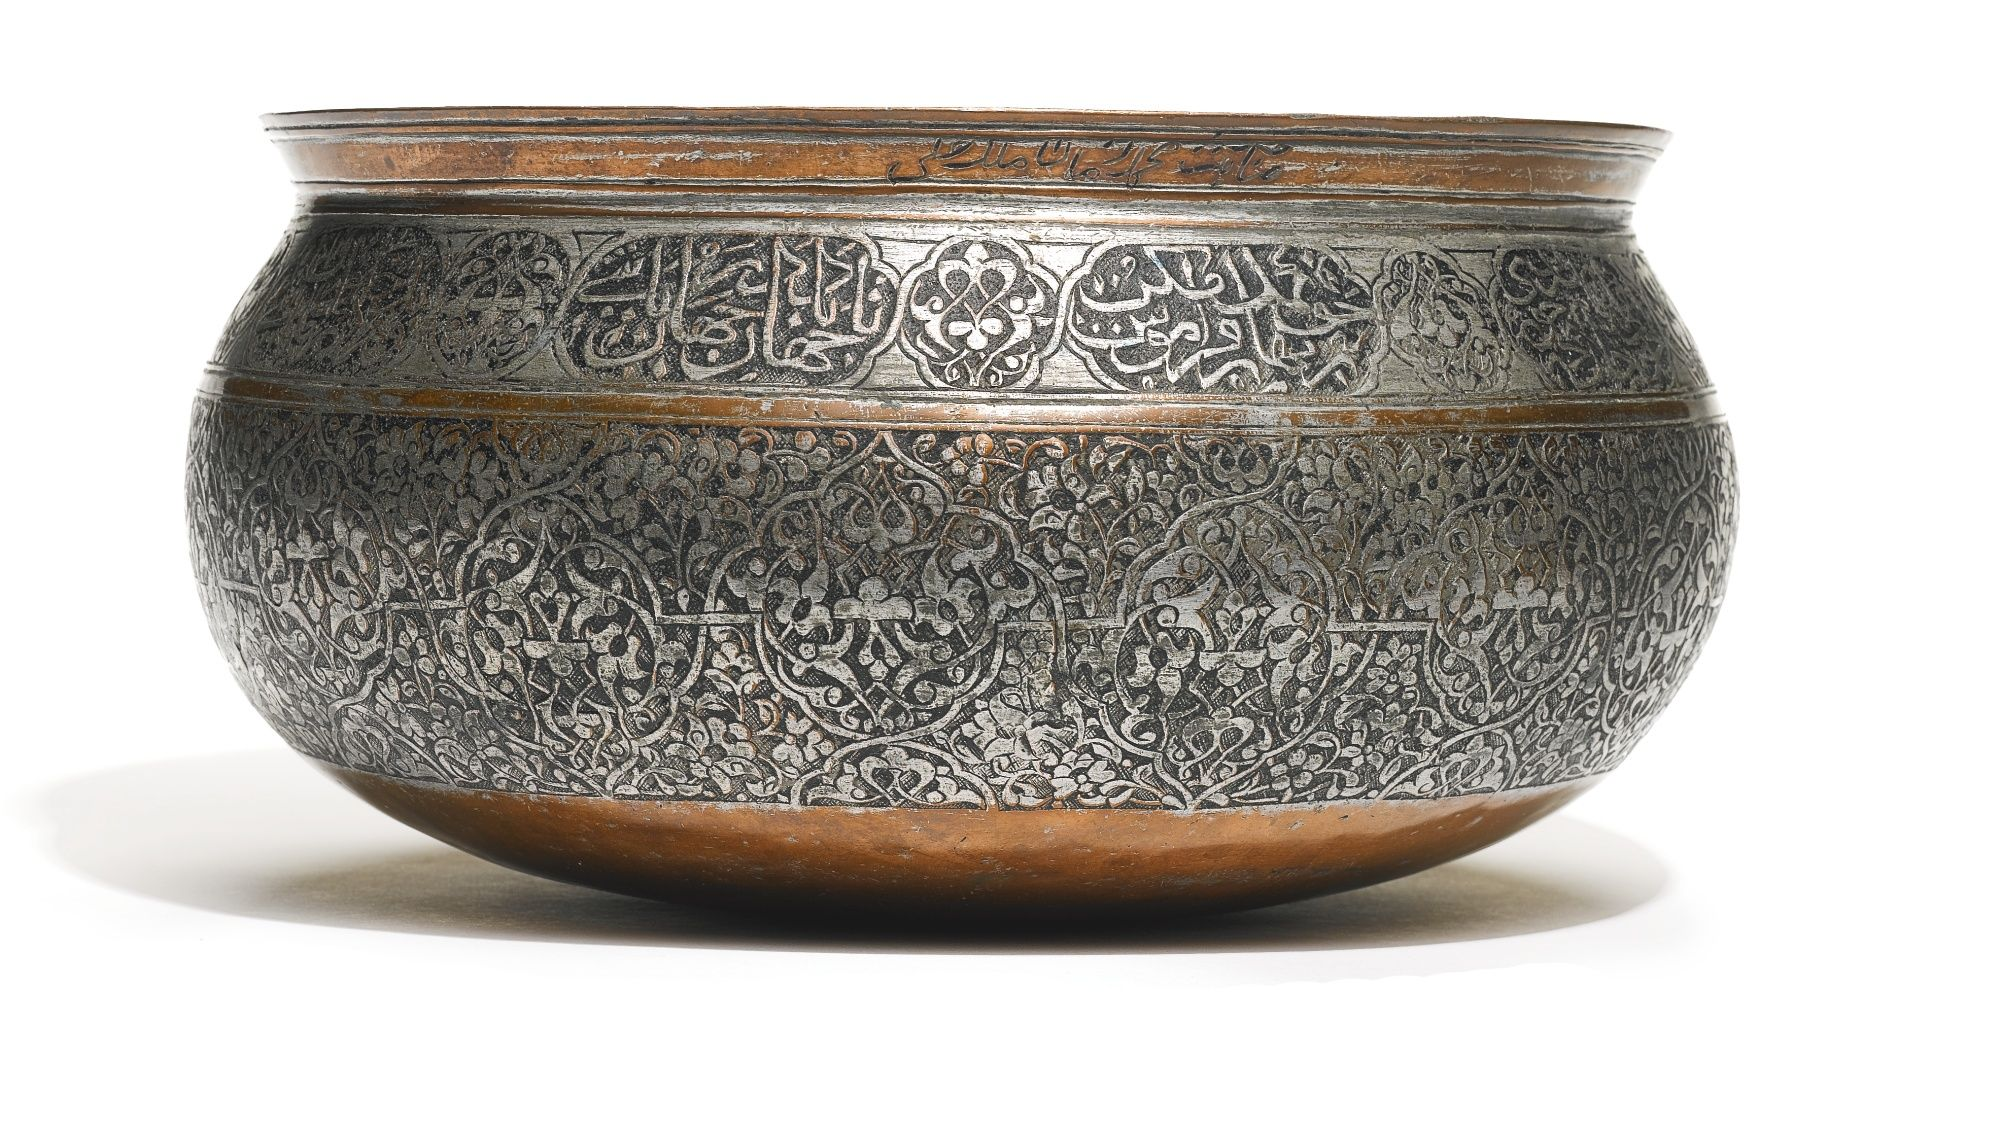 A Timurid or early Safavid tinned-copper bowl, Persia, 15th/16th ...